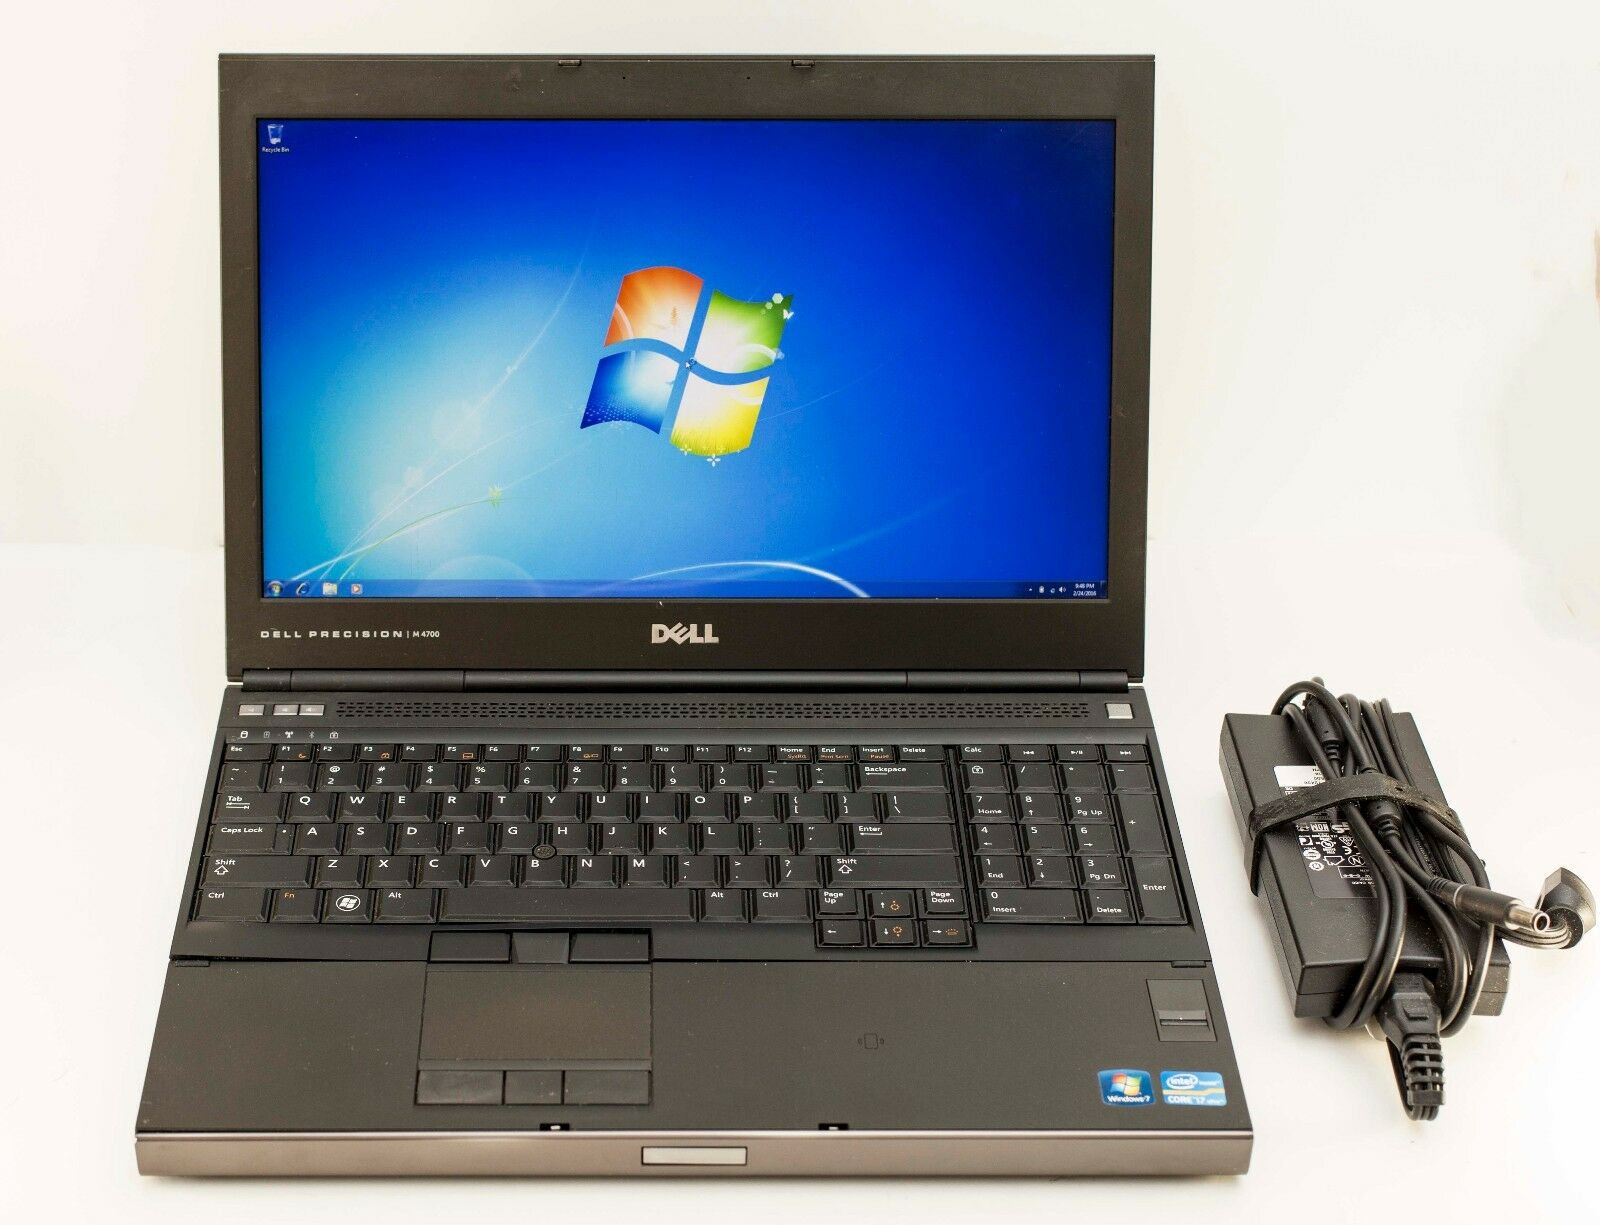 Dell Precision M4700 Core i7-3740QM 2.7GHz 8GB 256GB SSD W7 K2000m Gaming Laptop